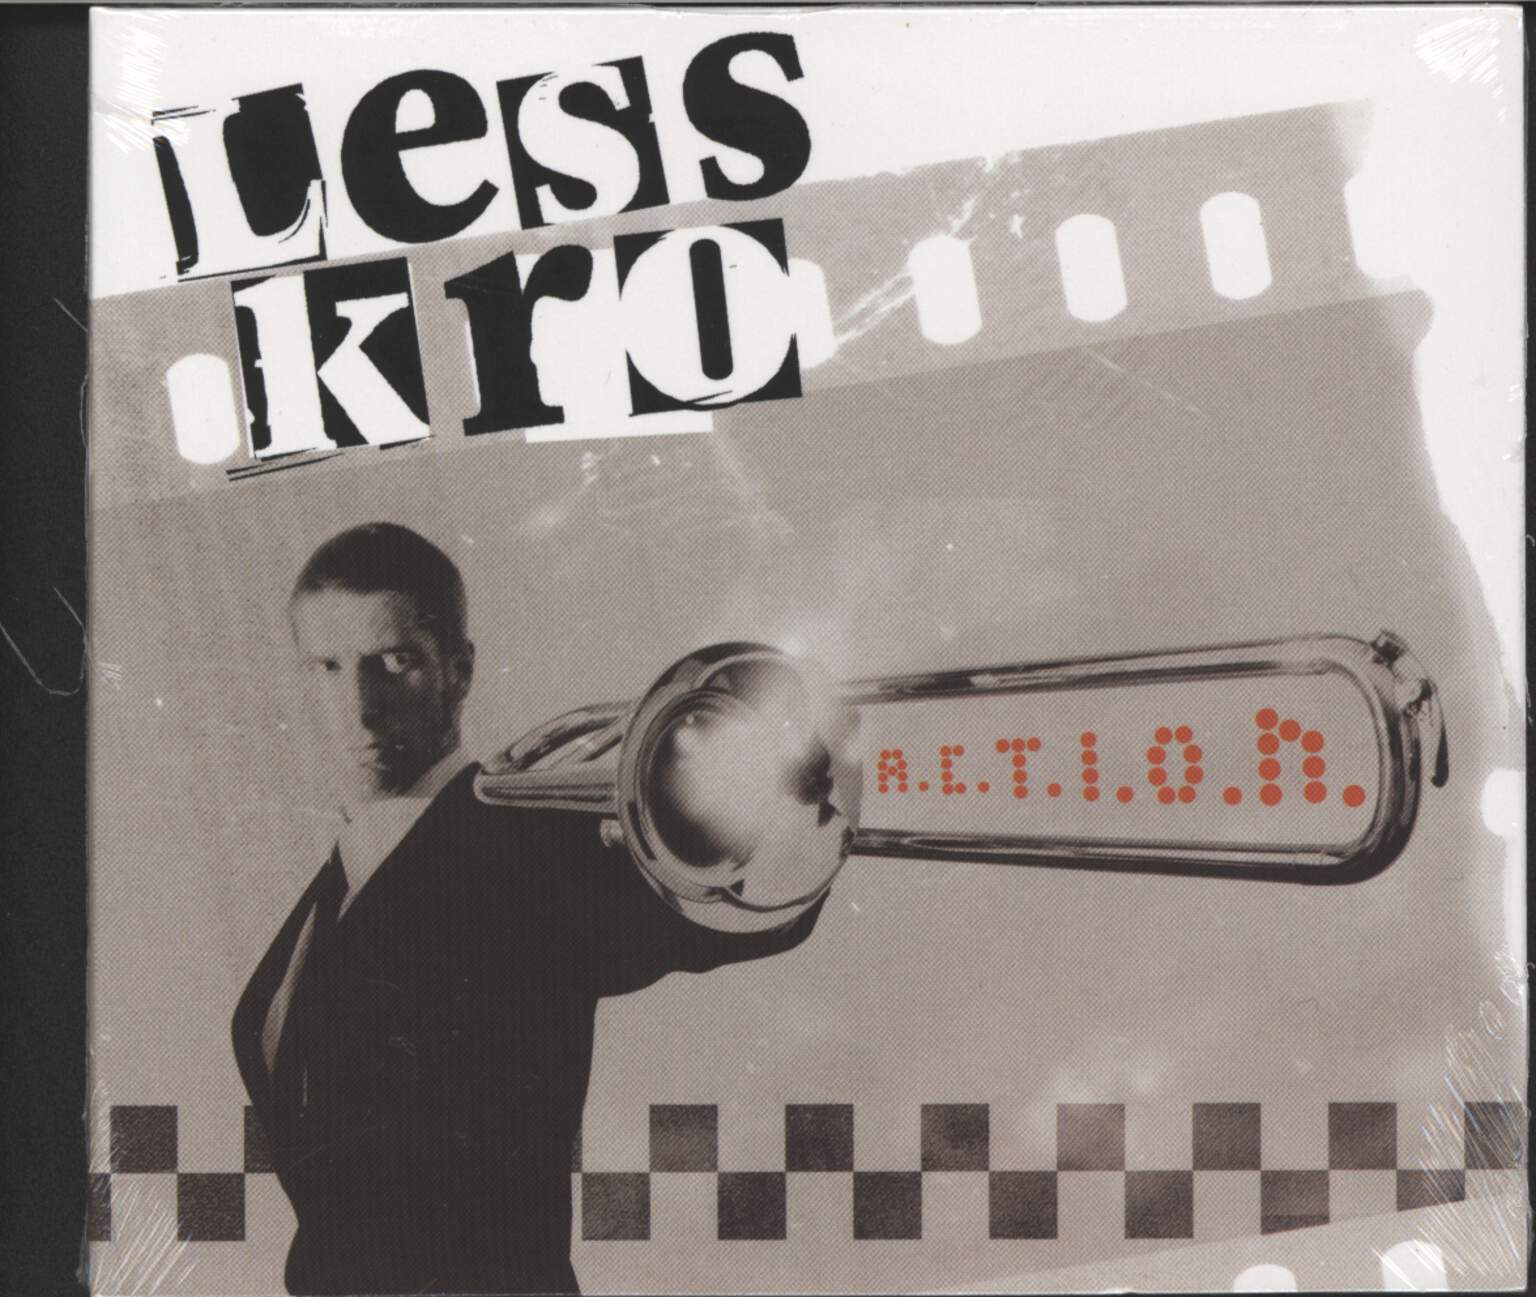 Less Kro: A.C.T.I.O.N., CD